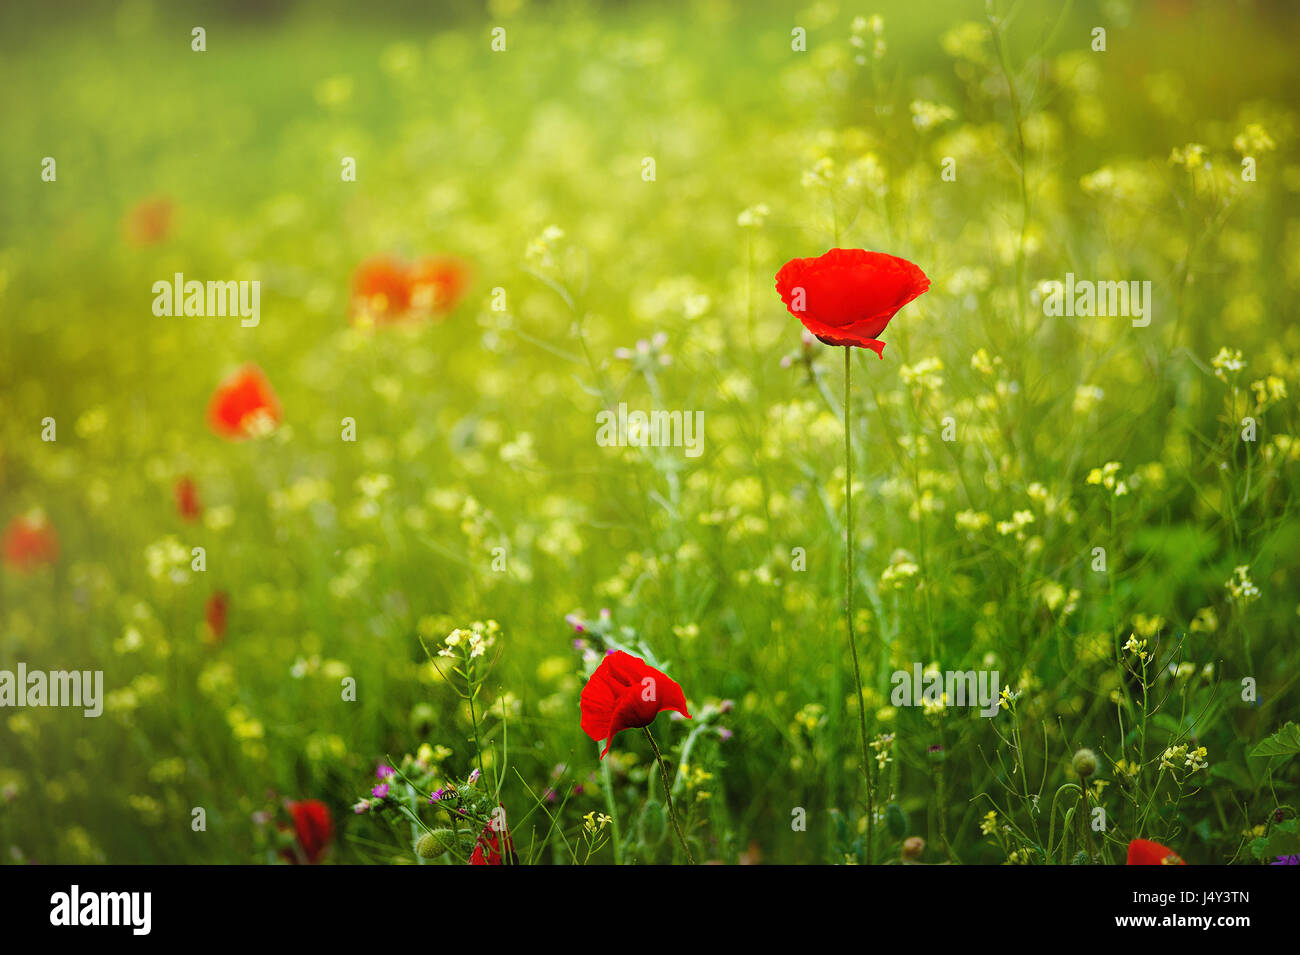 Red poppies in rays sun red poppy flowers blooming in the green red poppies in rays sun red poppy flowers blooming in the green grass field floral sunny natural spring background can be used as image for remembrance mightylinksfo